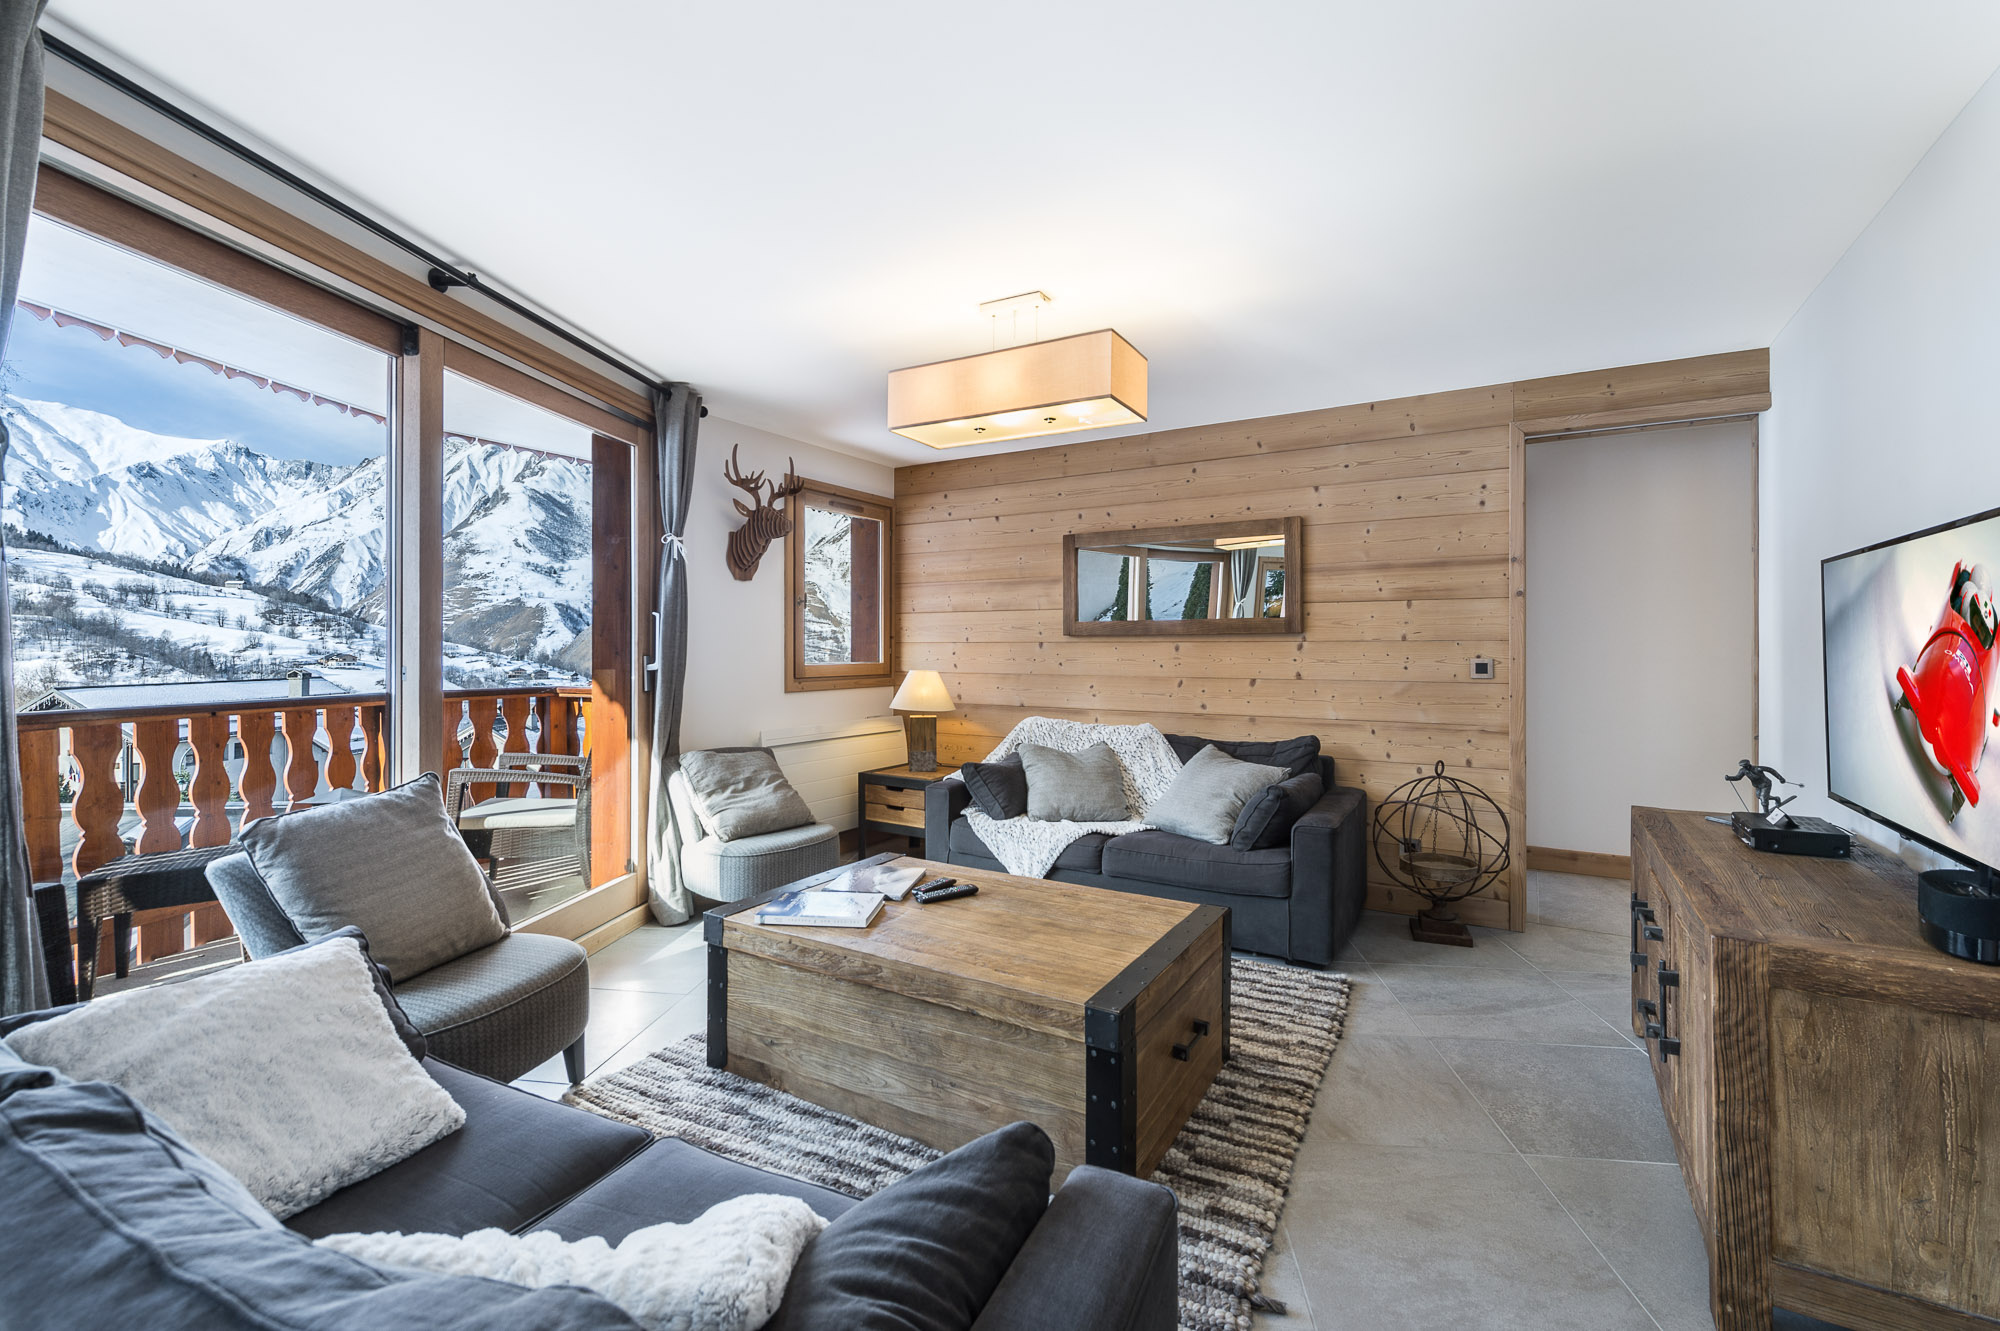 Our *NEW* Prestige chalets – Luxury apartments with ski-in ski-out location